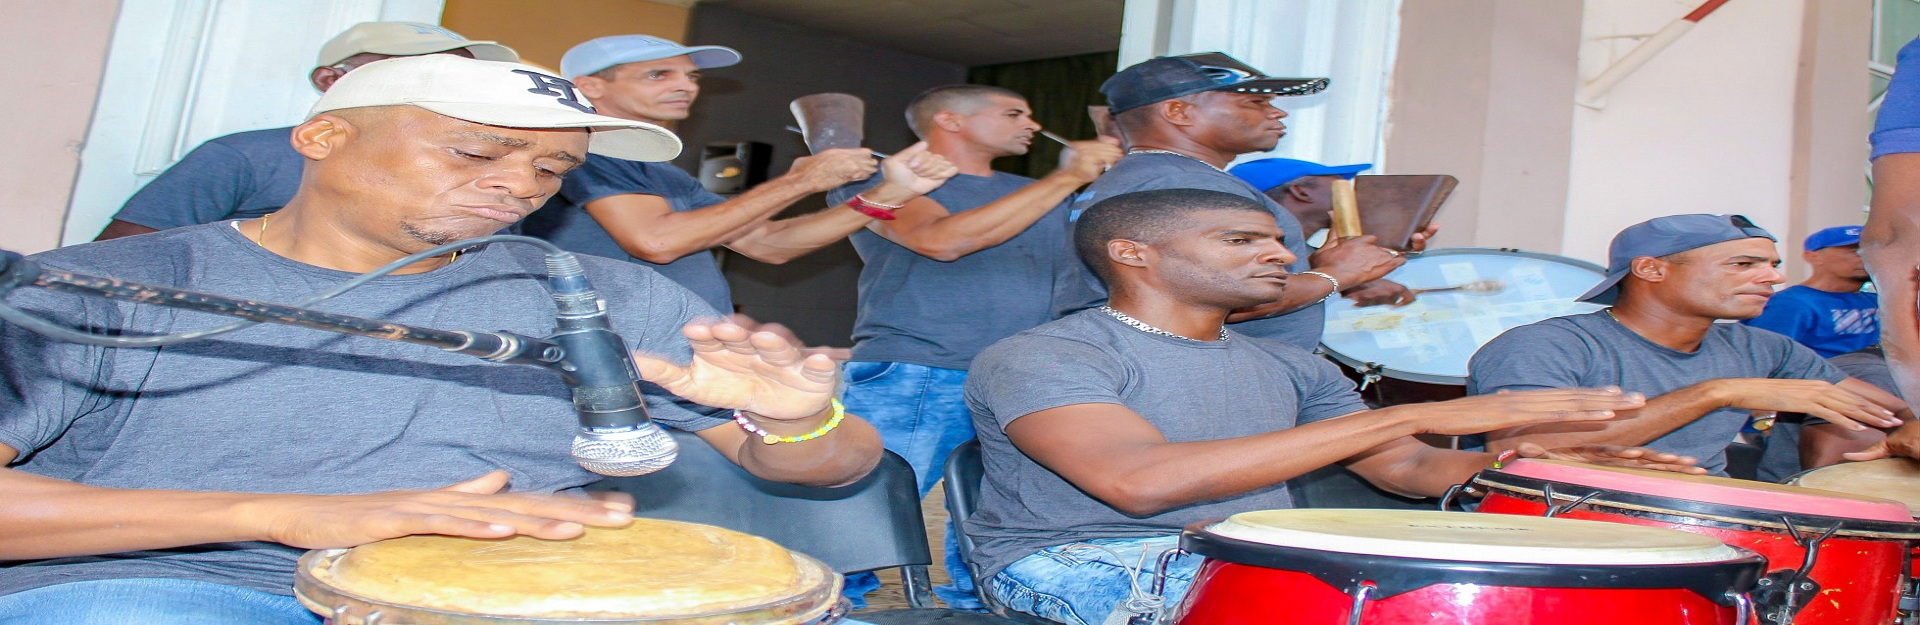 Percussionists from Bejucal, Cuba Travel